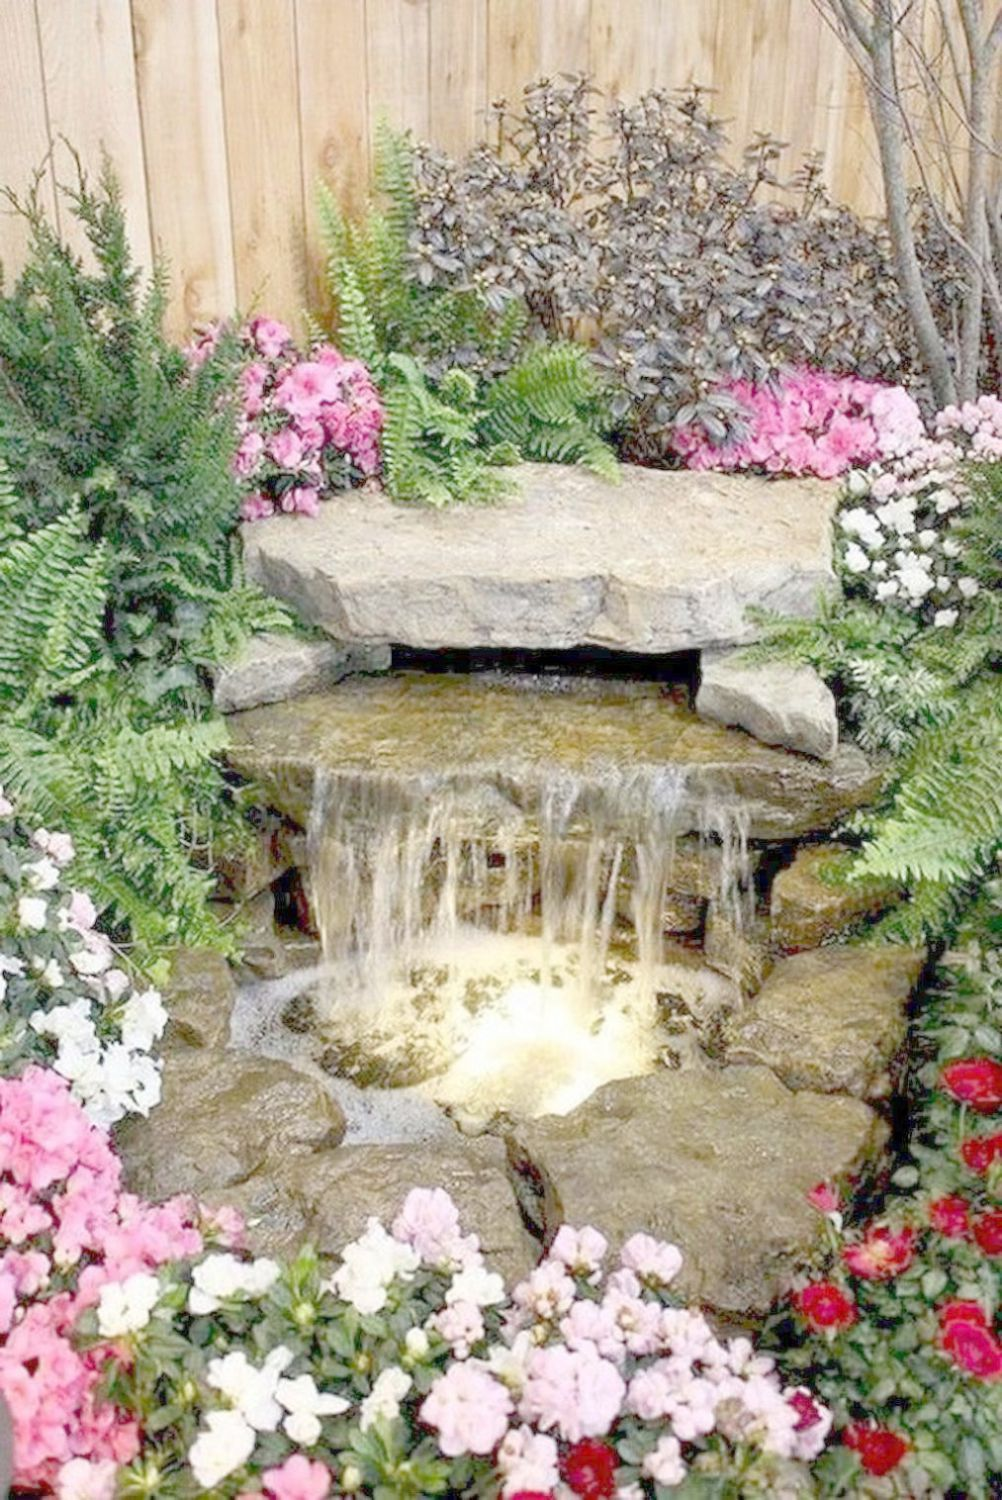 Products To Help Keep Your Grass Green Backyard Landscaping Designs Small Backyard Gardens